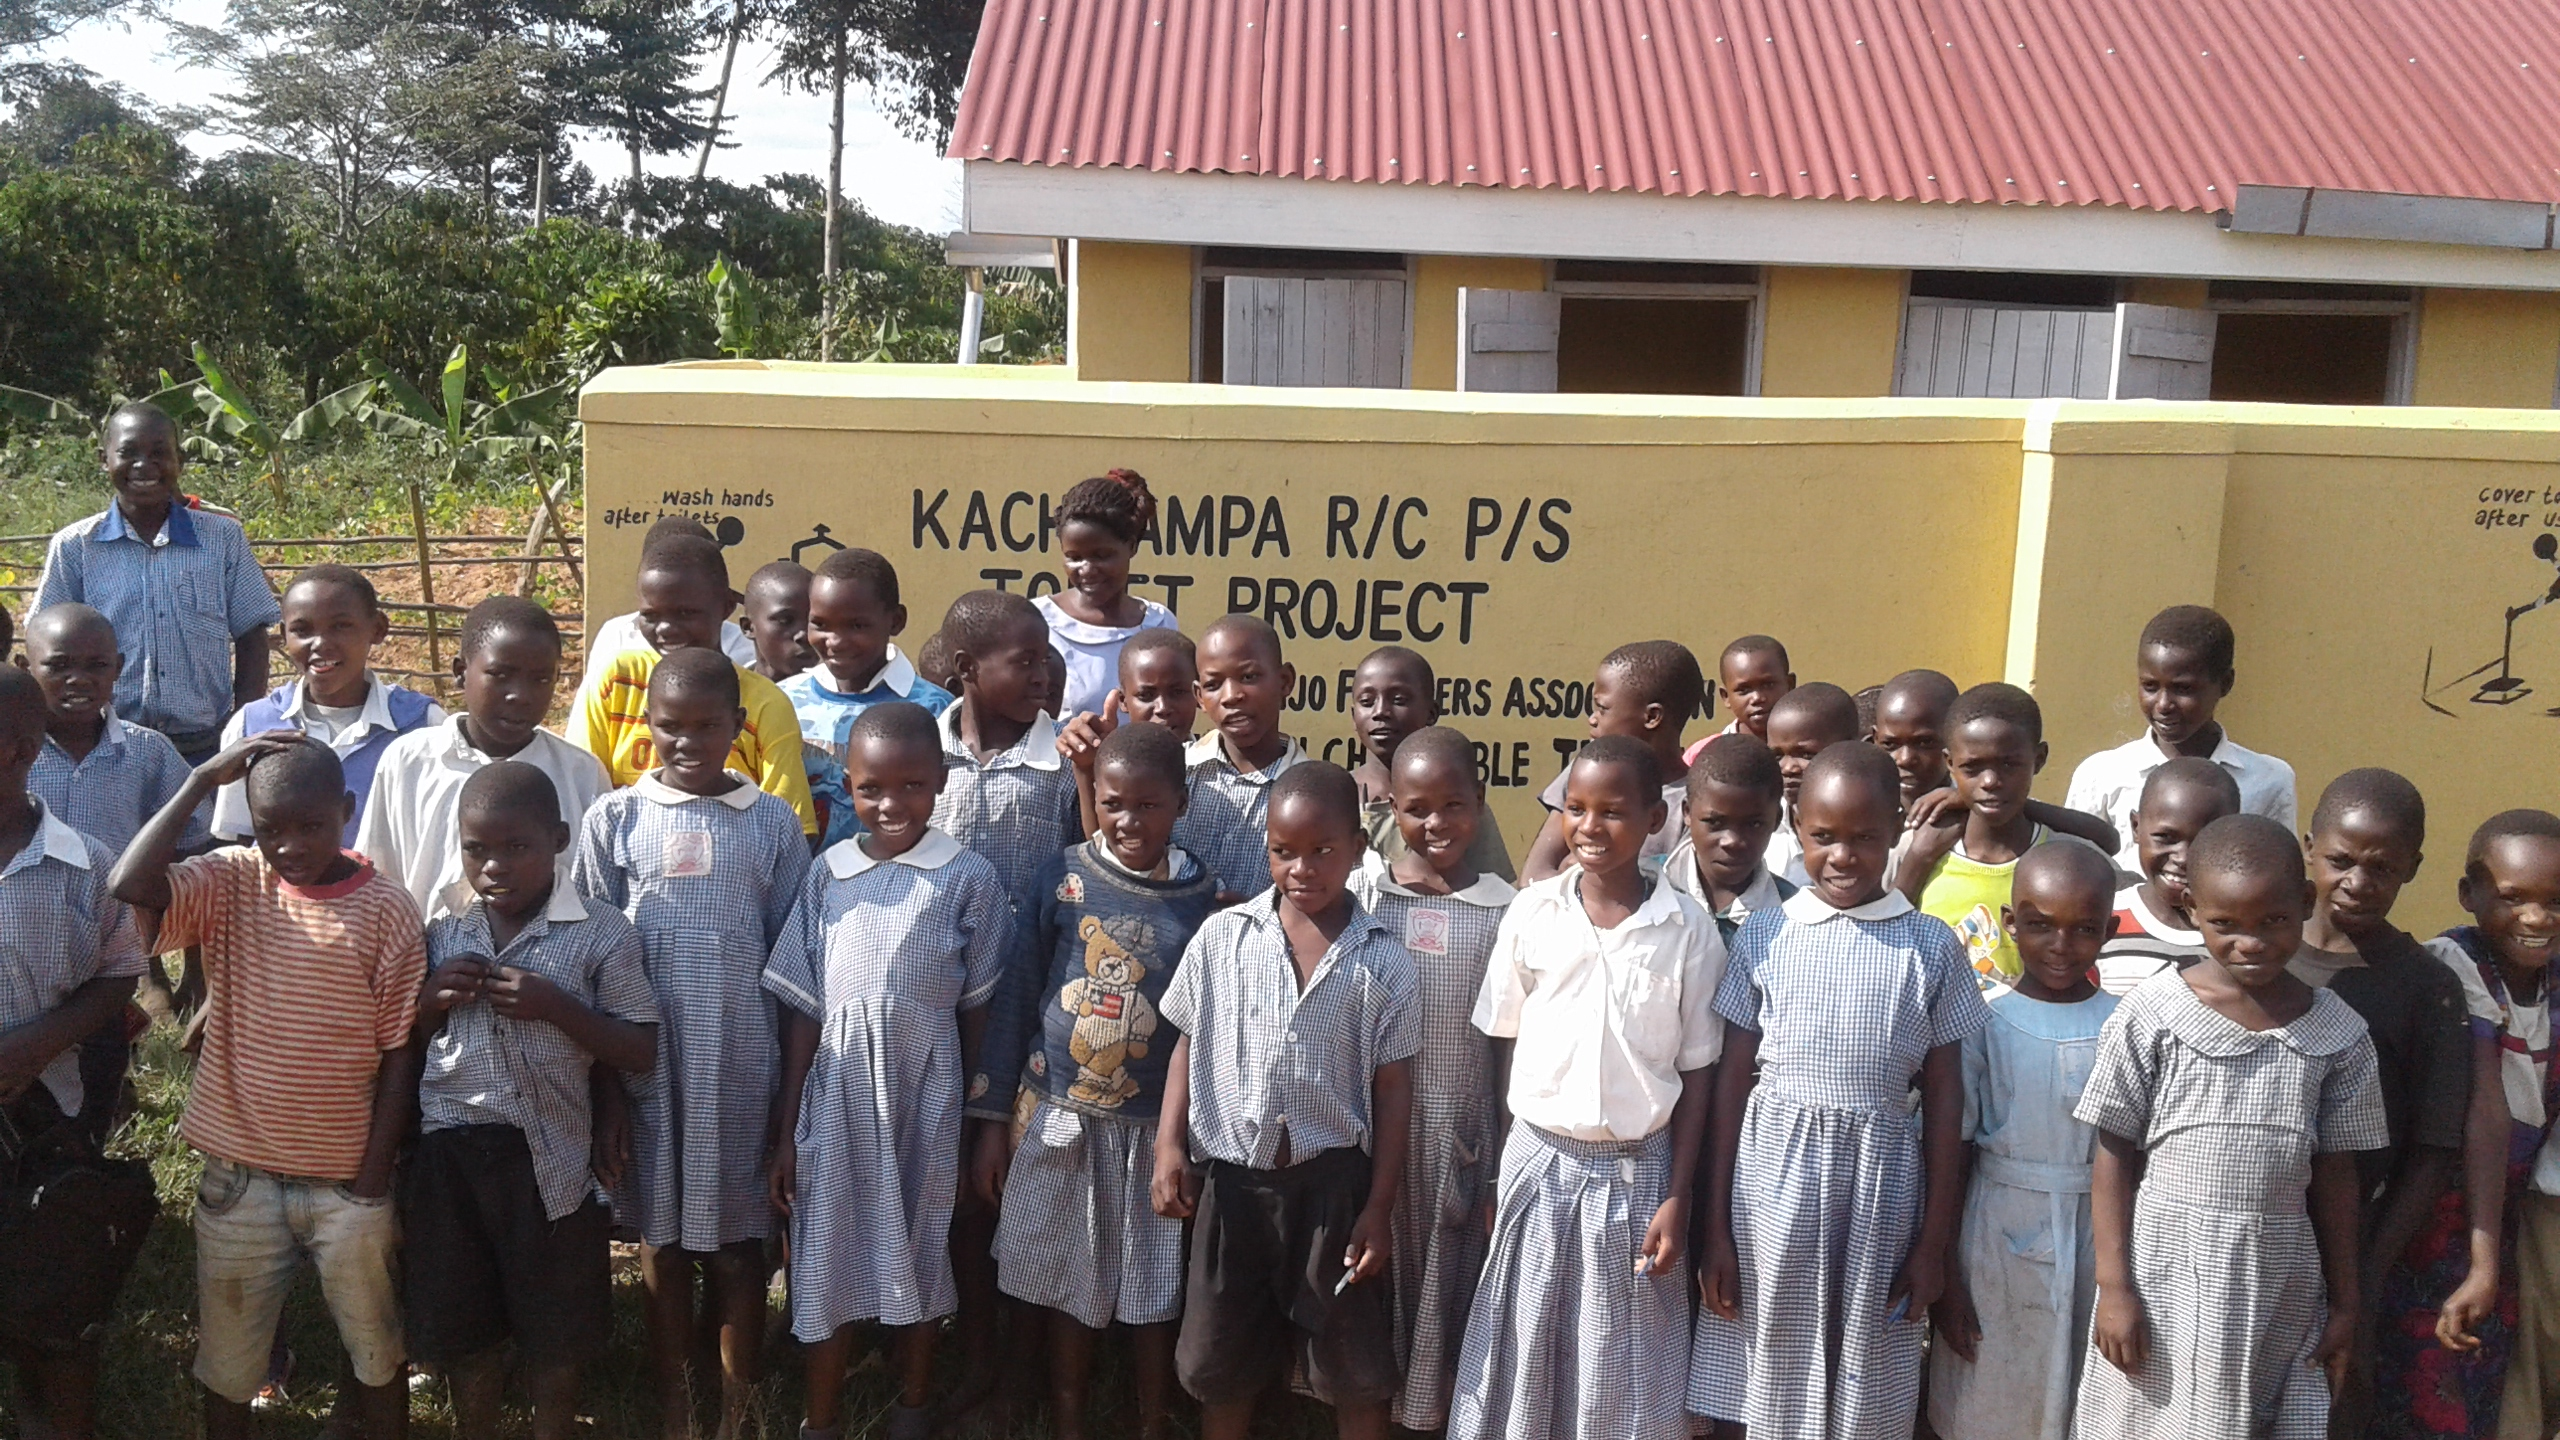 Good sanitation is the way to keep children health, Kanchwampa Rc Primary sch are happy about the new toilets constructed by CESA-Uganda